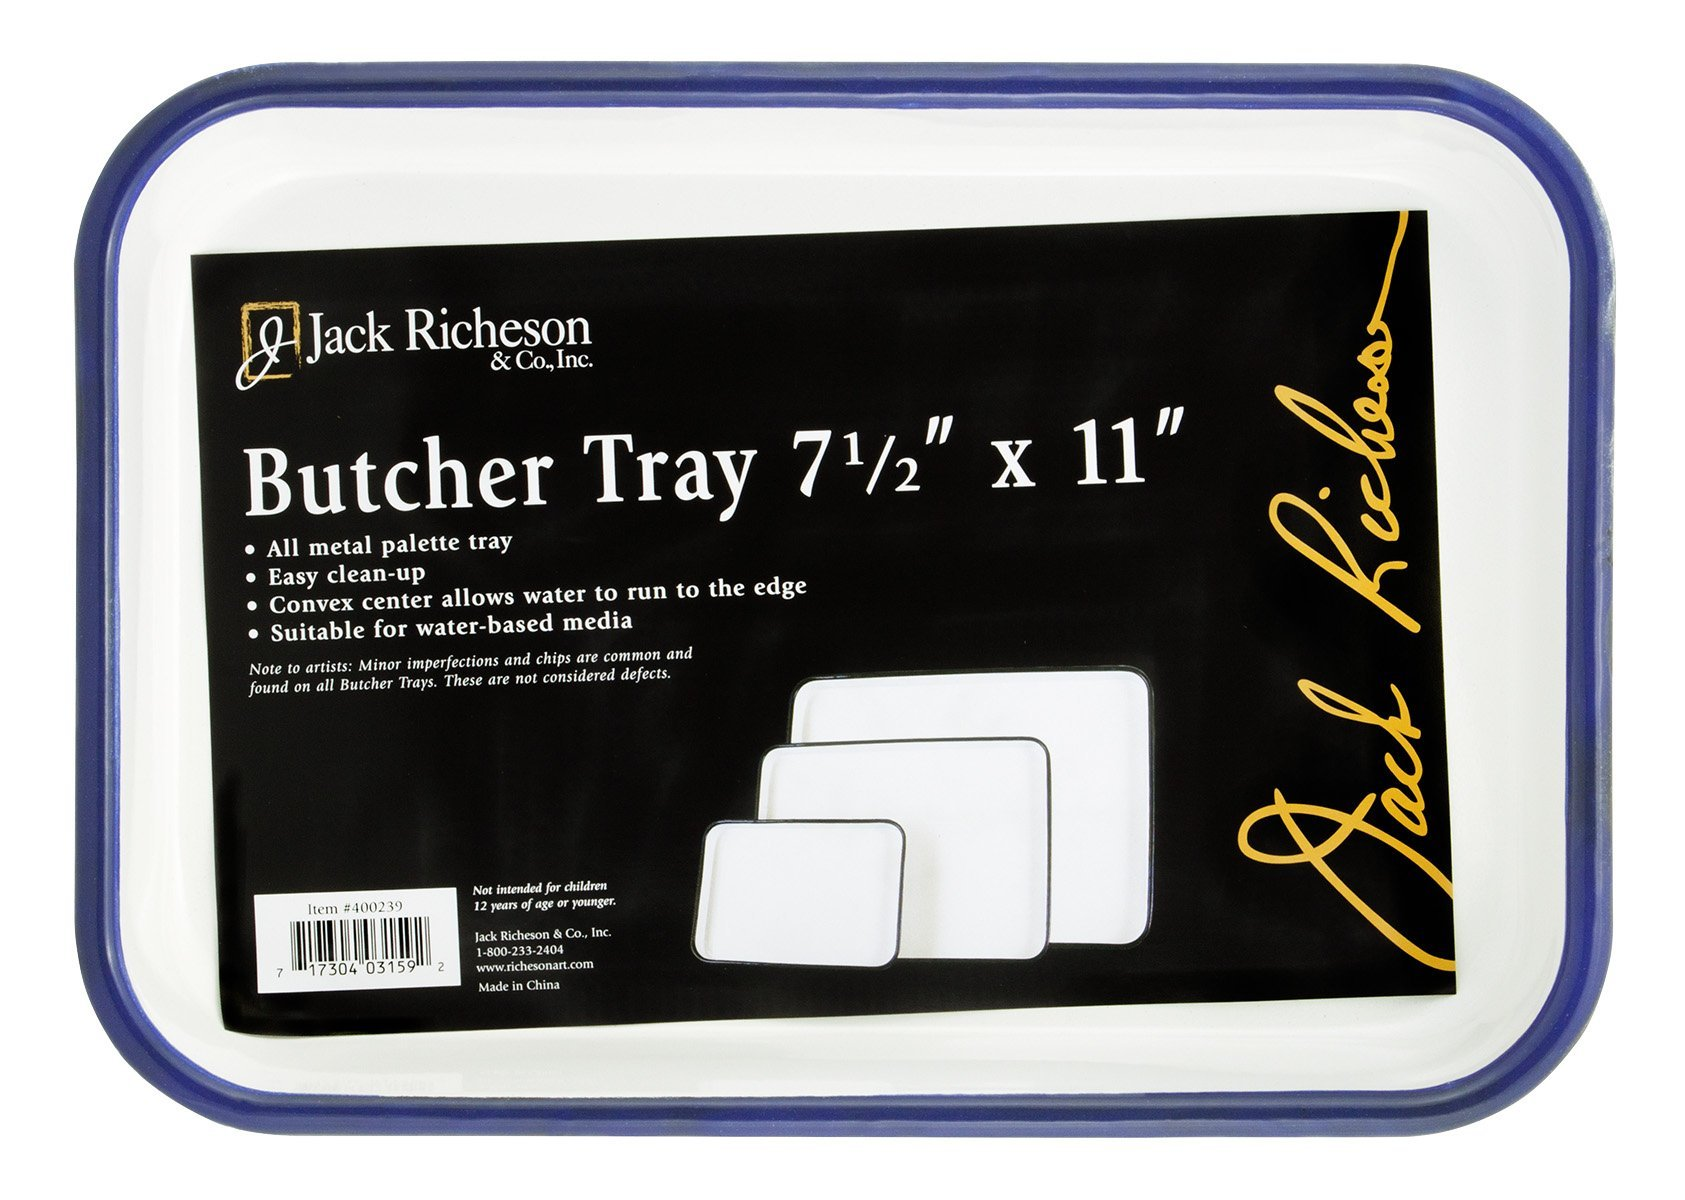 Jack Richeson Butcher Tray Palette, 7 x 11 in, Porcelain On Steel, White - JACK-400239 by Jack Richeson